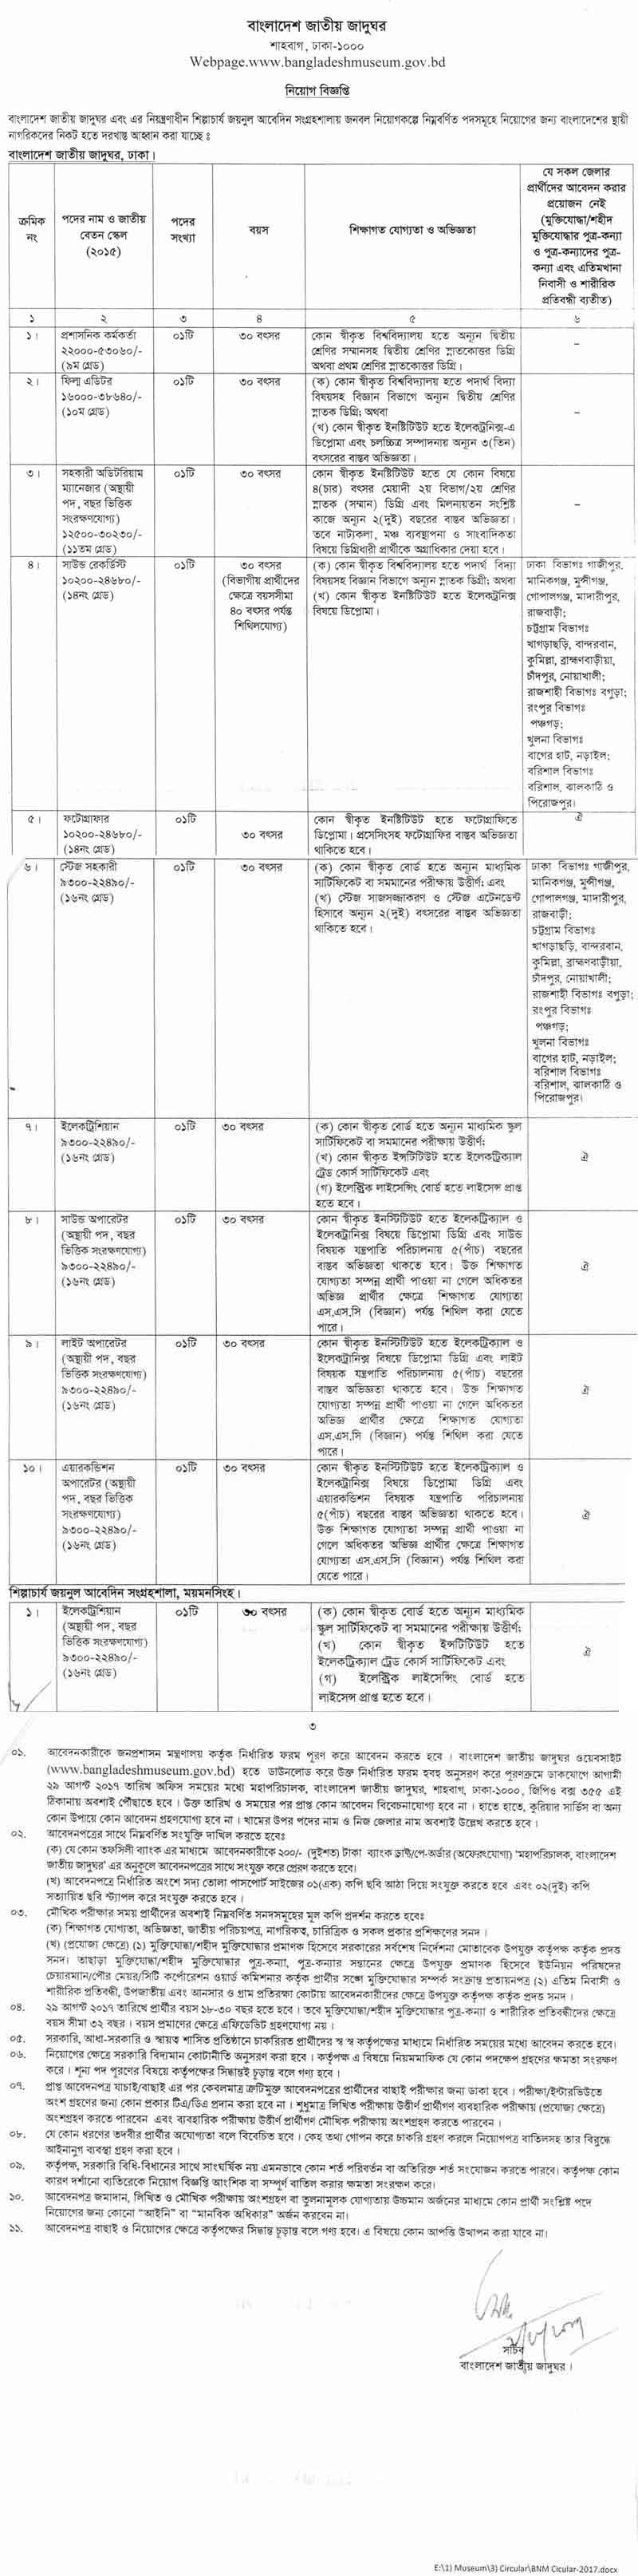 Bangladesh National Museum Job Opportunity 2017